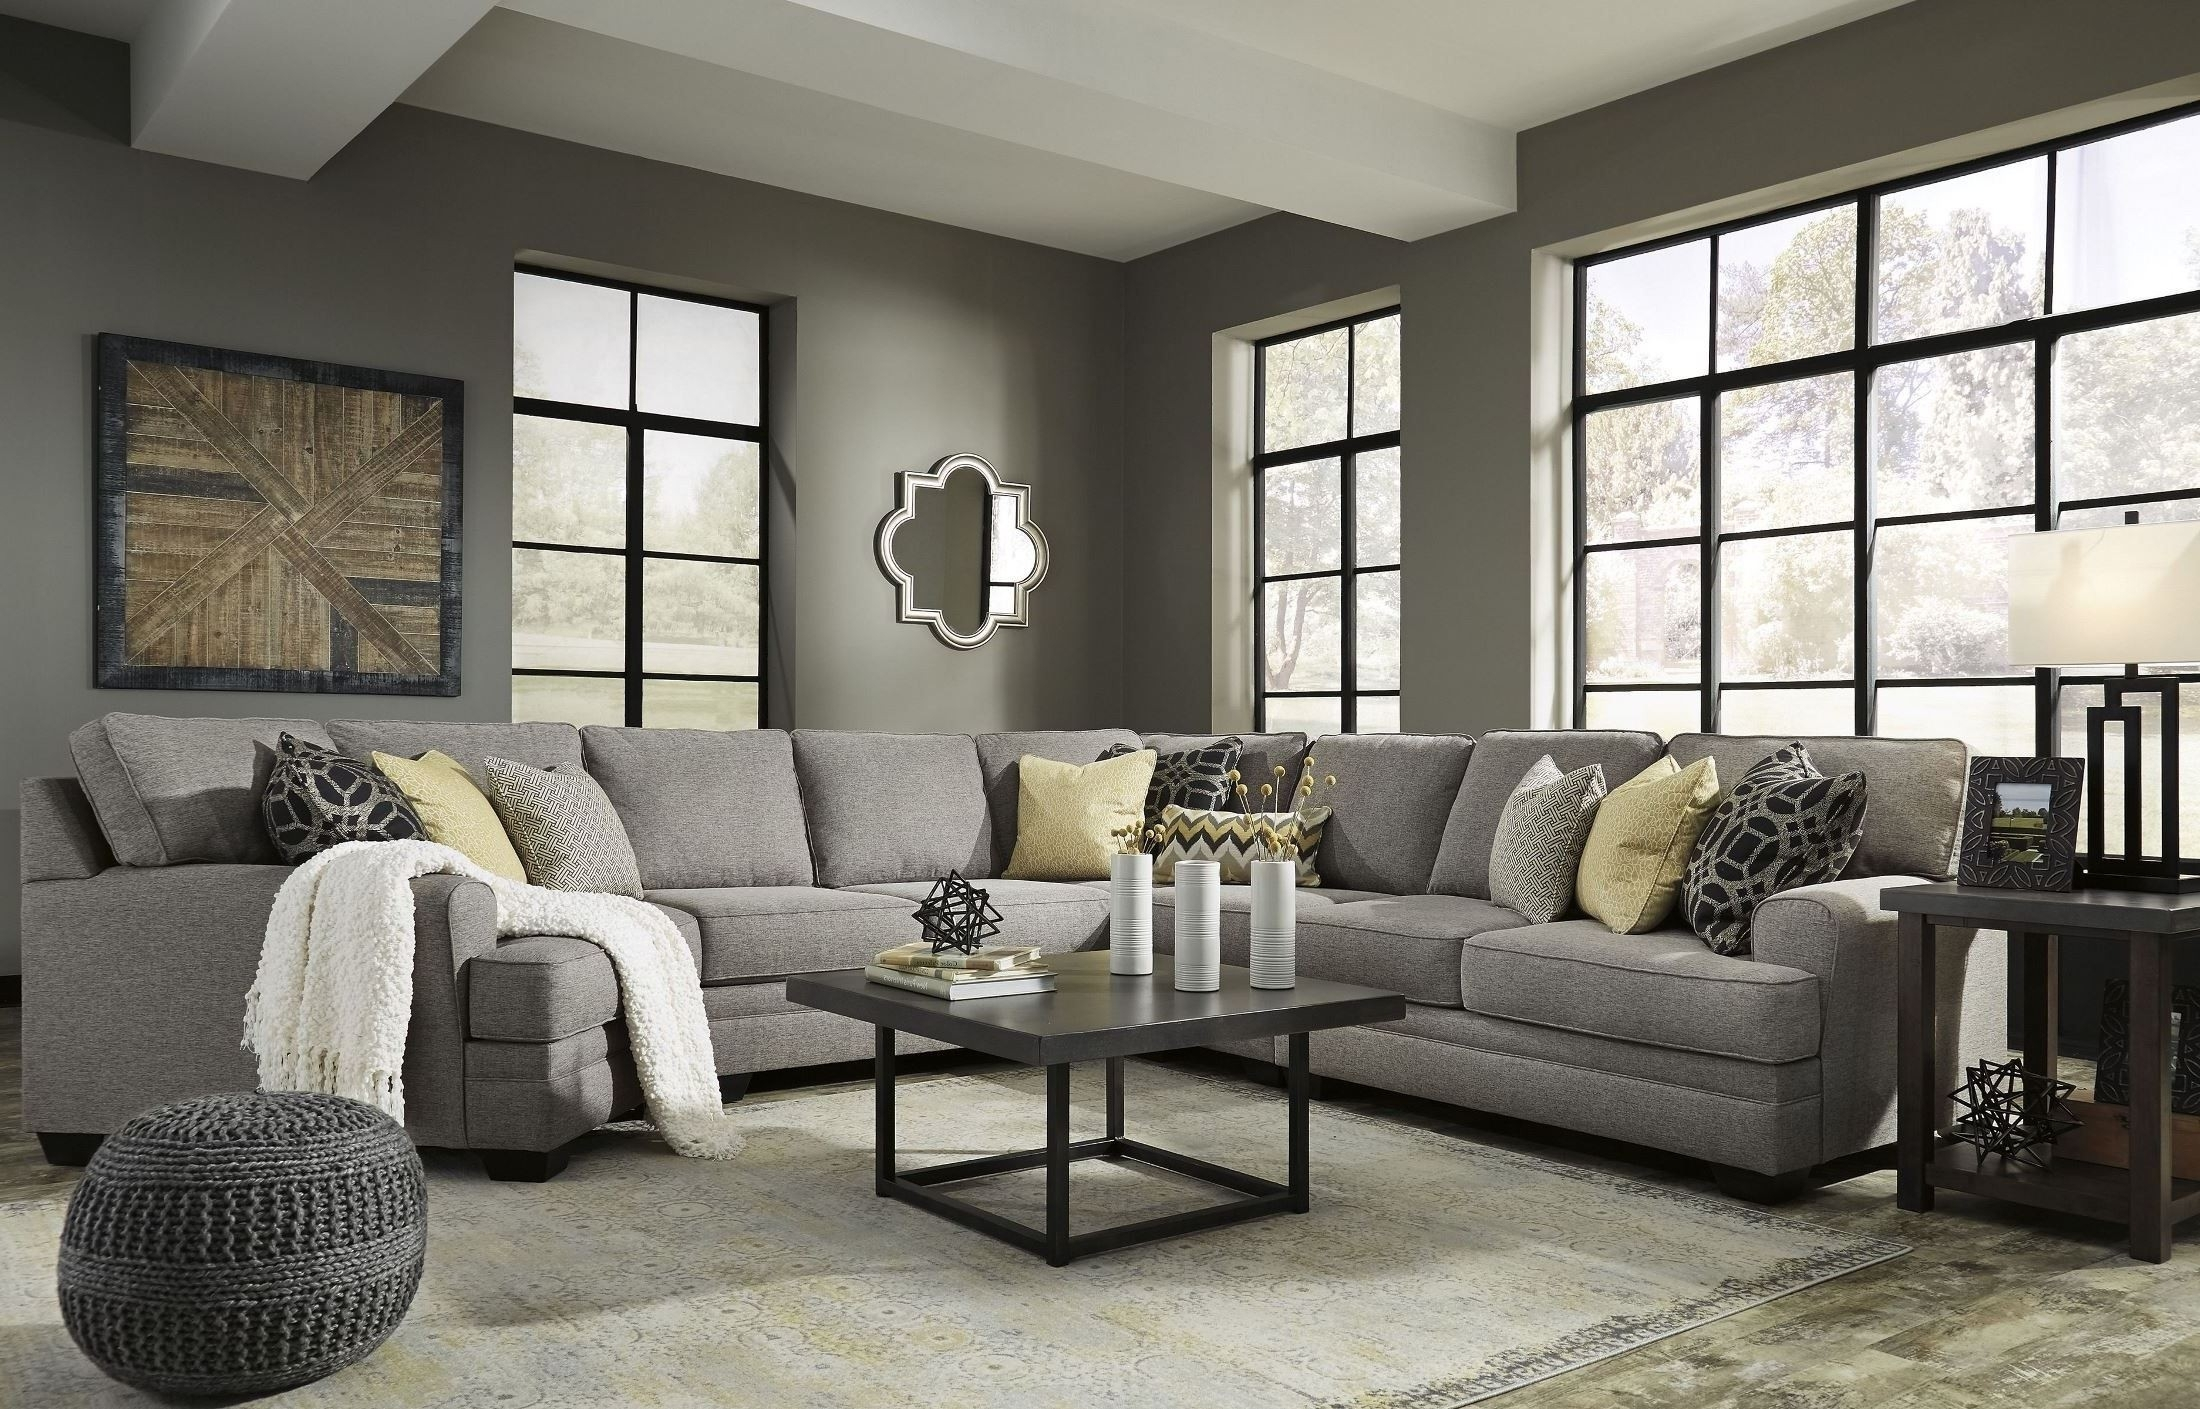 Cresson Pewter Laf Cuddler Sectional From Ashley | Coleman Furniture pertaining to Aspen 2 Piece Sectionals With Laf Chaise (Image 12 of 30)